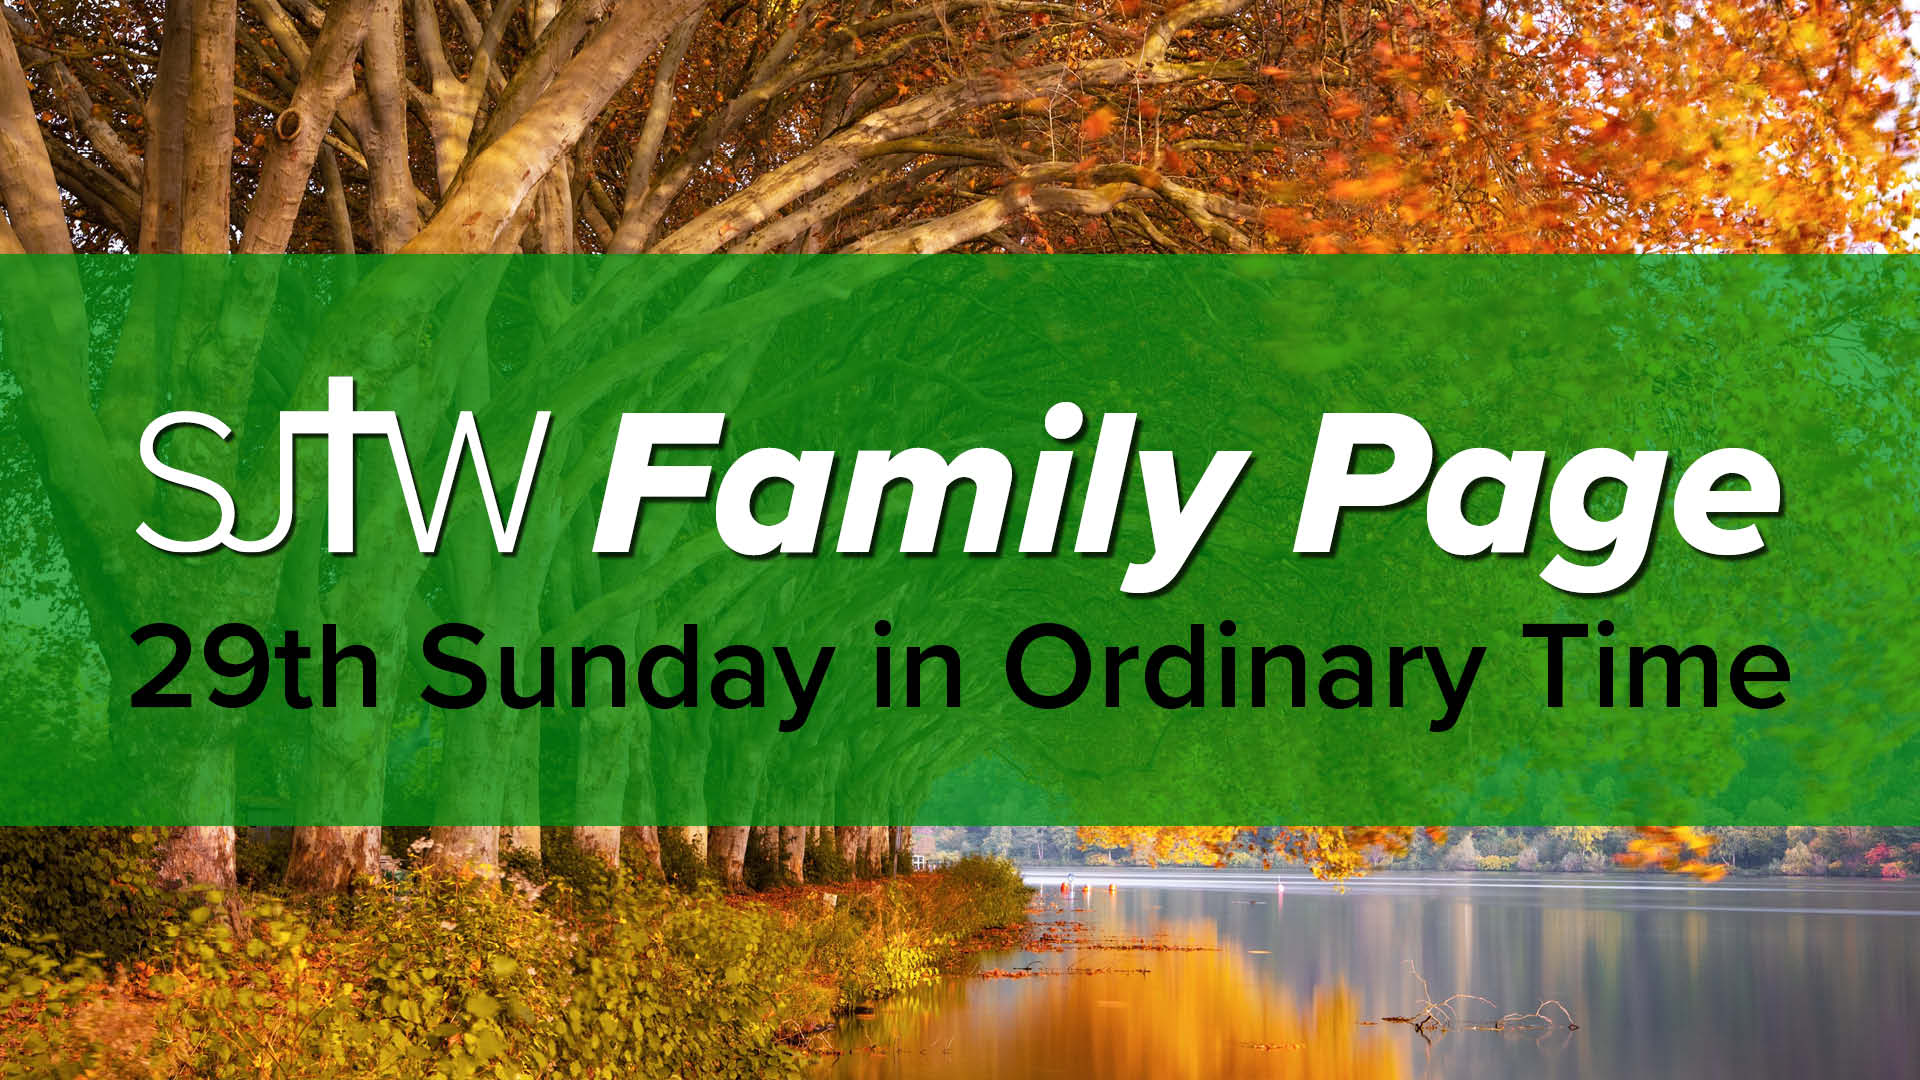 Family Page - 29th Sunday in Ordinary Time